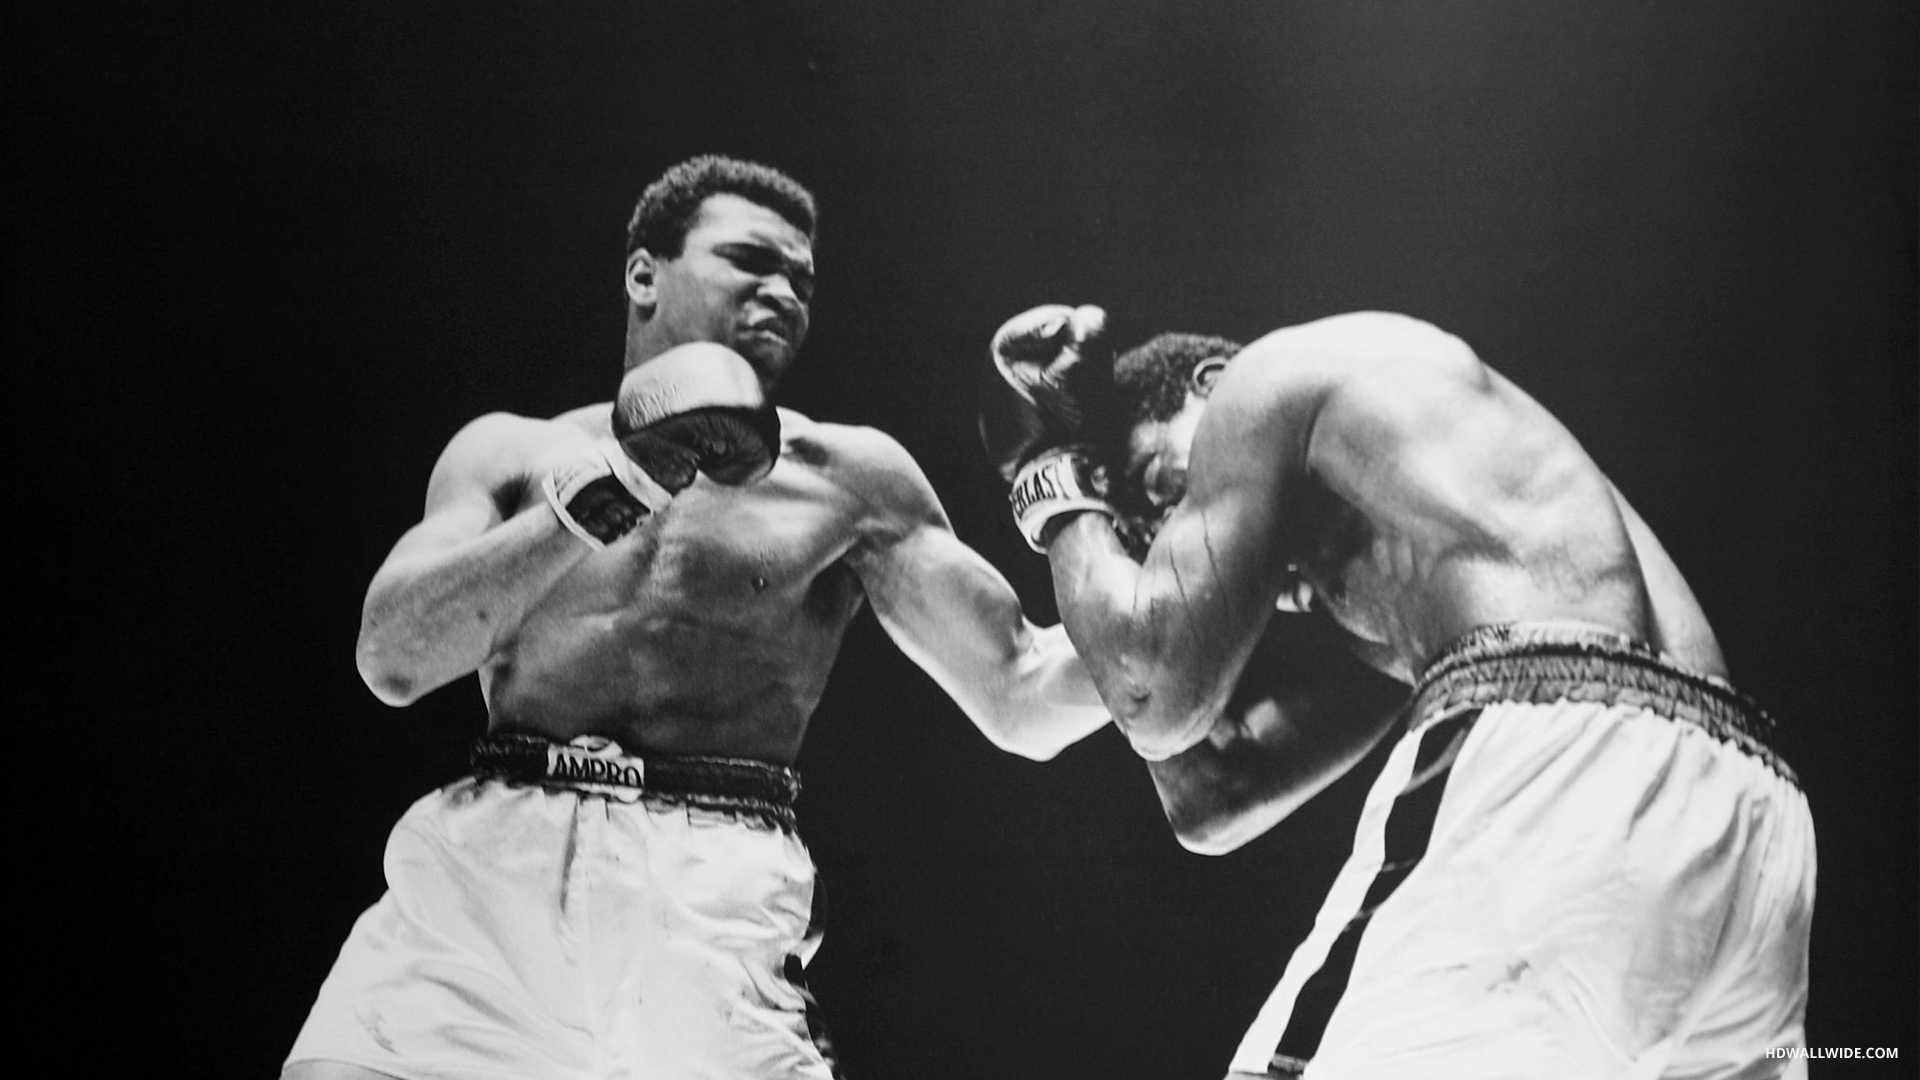 1920x1080 Sports Wallpaper: Ali Boxing Wallpapers Mobile with High .